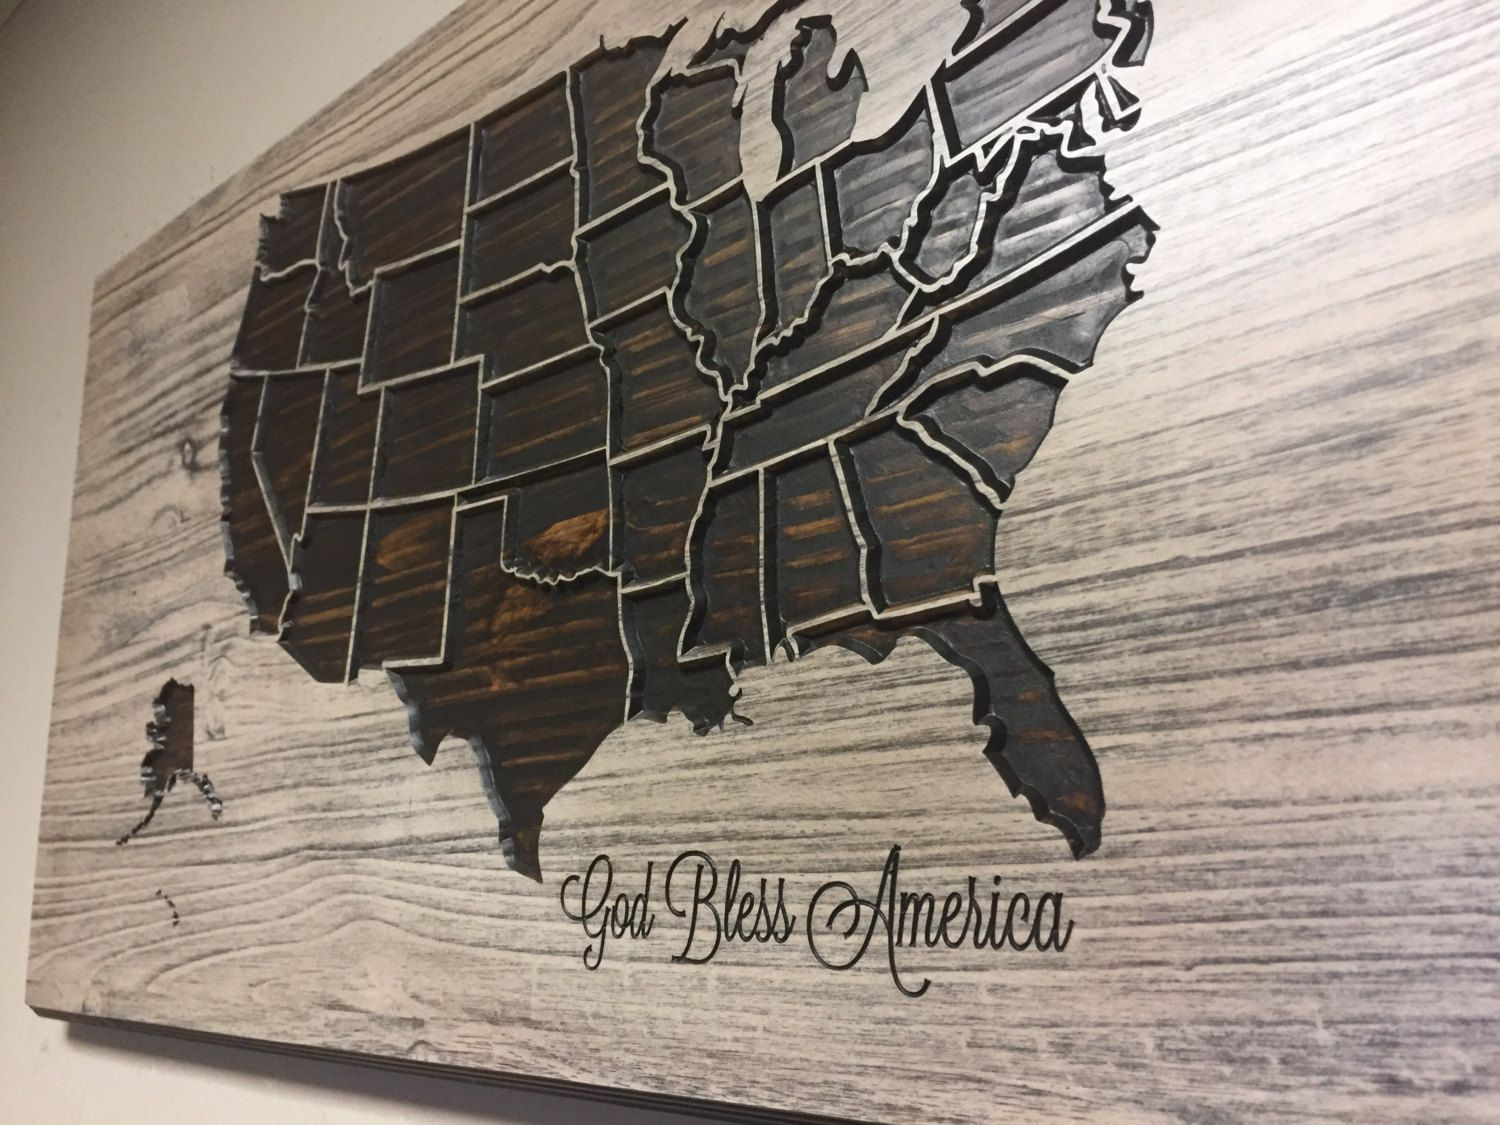 Us Map Wall Art god bless america decor, wooden us map, wood wall art, home wall